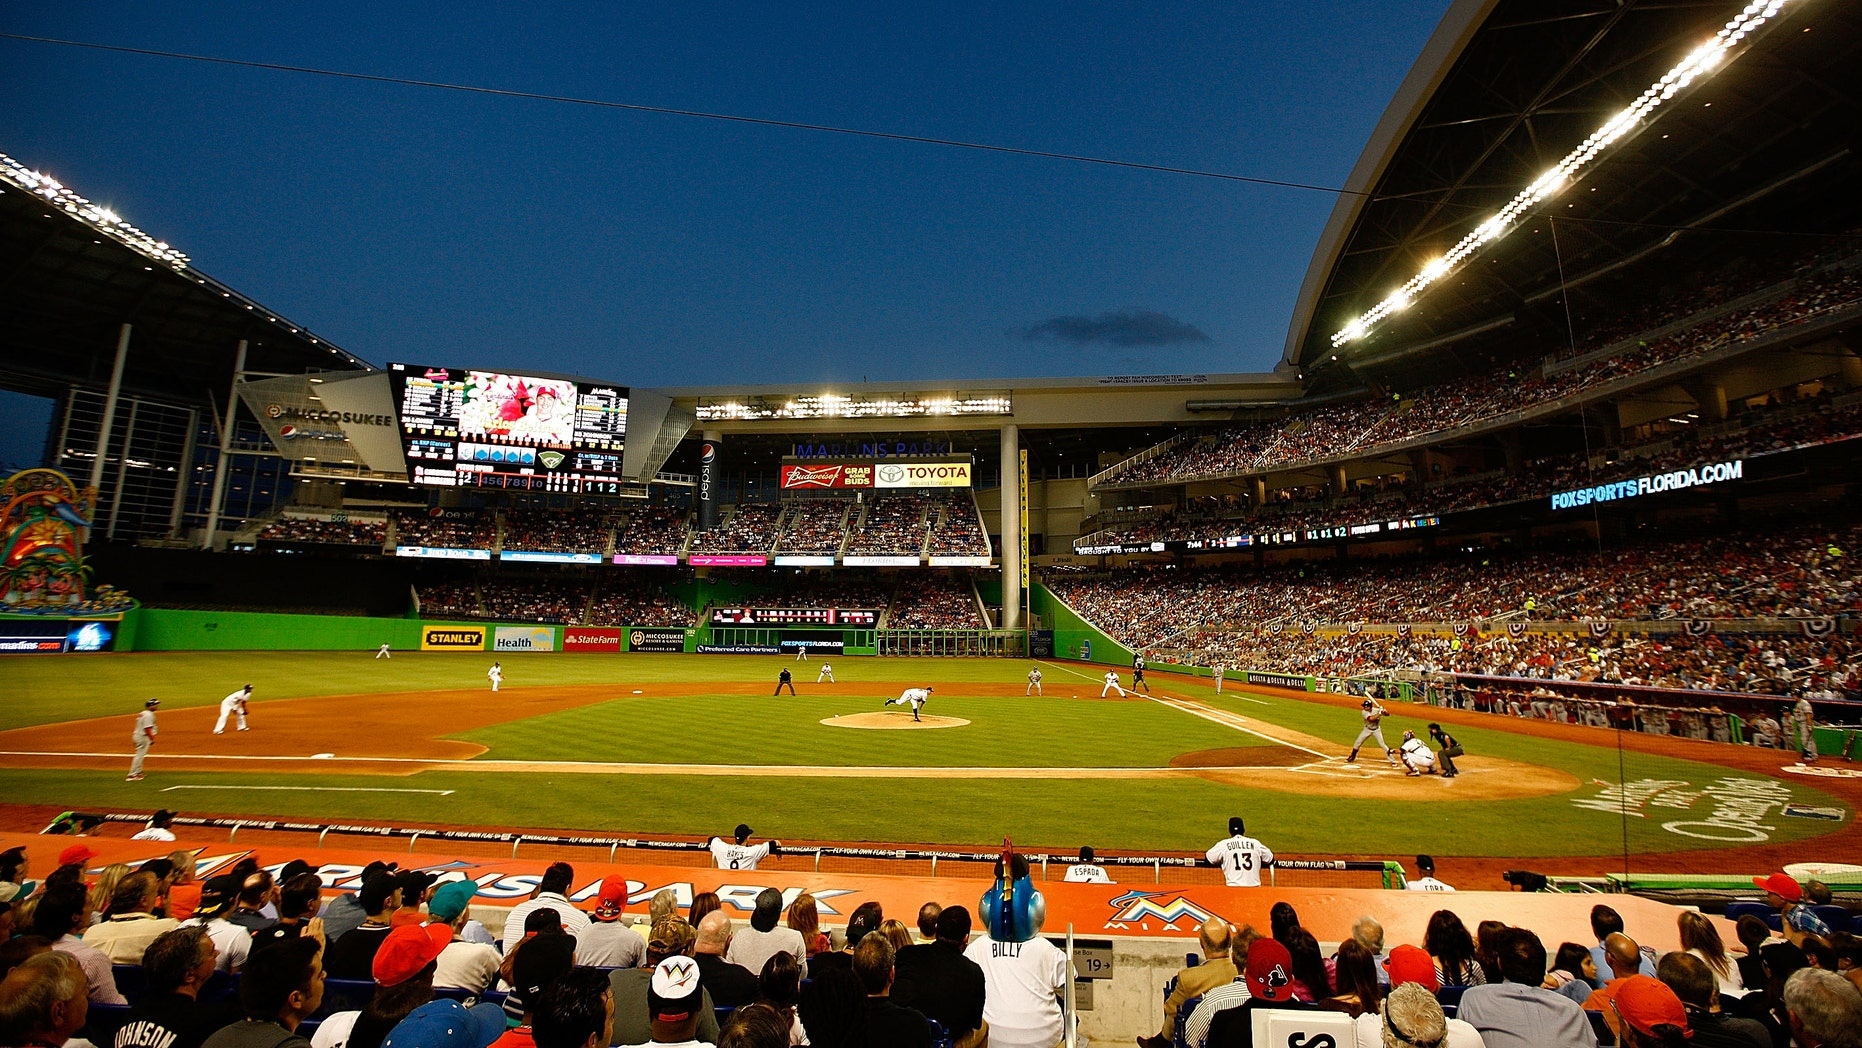 MIAMI, FL - APRIL 04:  A general view of Marlin's Park during Opening Day between the Miami Marlins and the St. Louis Cardinals at Marlins Park on April 4, 2012 in Miami, Florida.  (Photo by Mike Ehrmann/Getty Images)